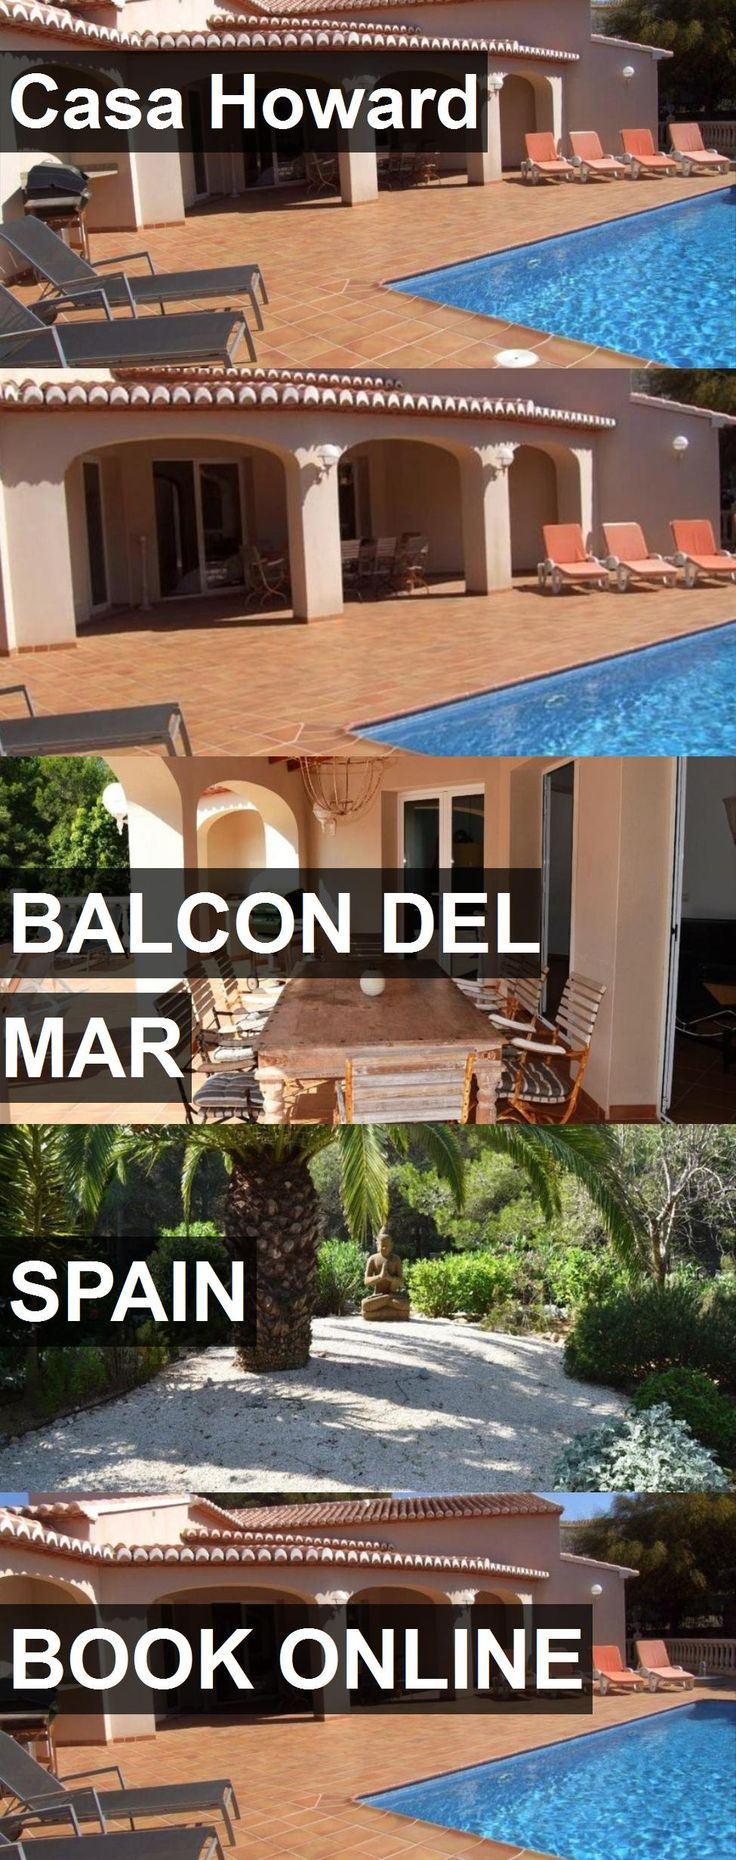 Hotel Casa Howard in Balcon del Mar, Spain. For more information, photos, reviews and best prices please follow the link. #Spain #BalcondelMar #travel #vacation #hotel